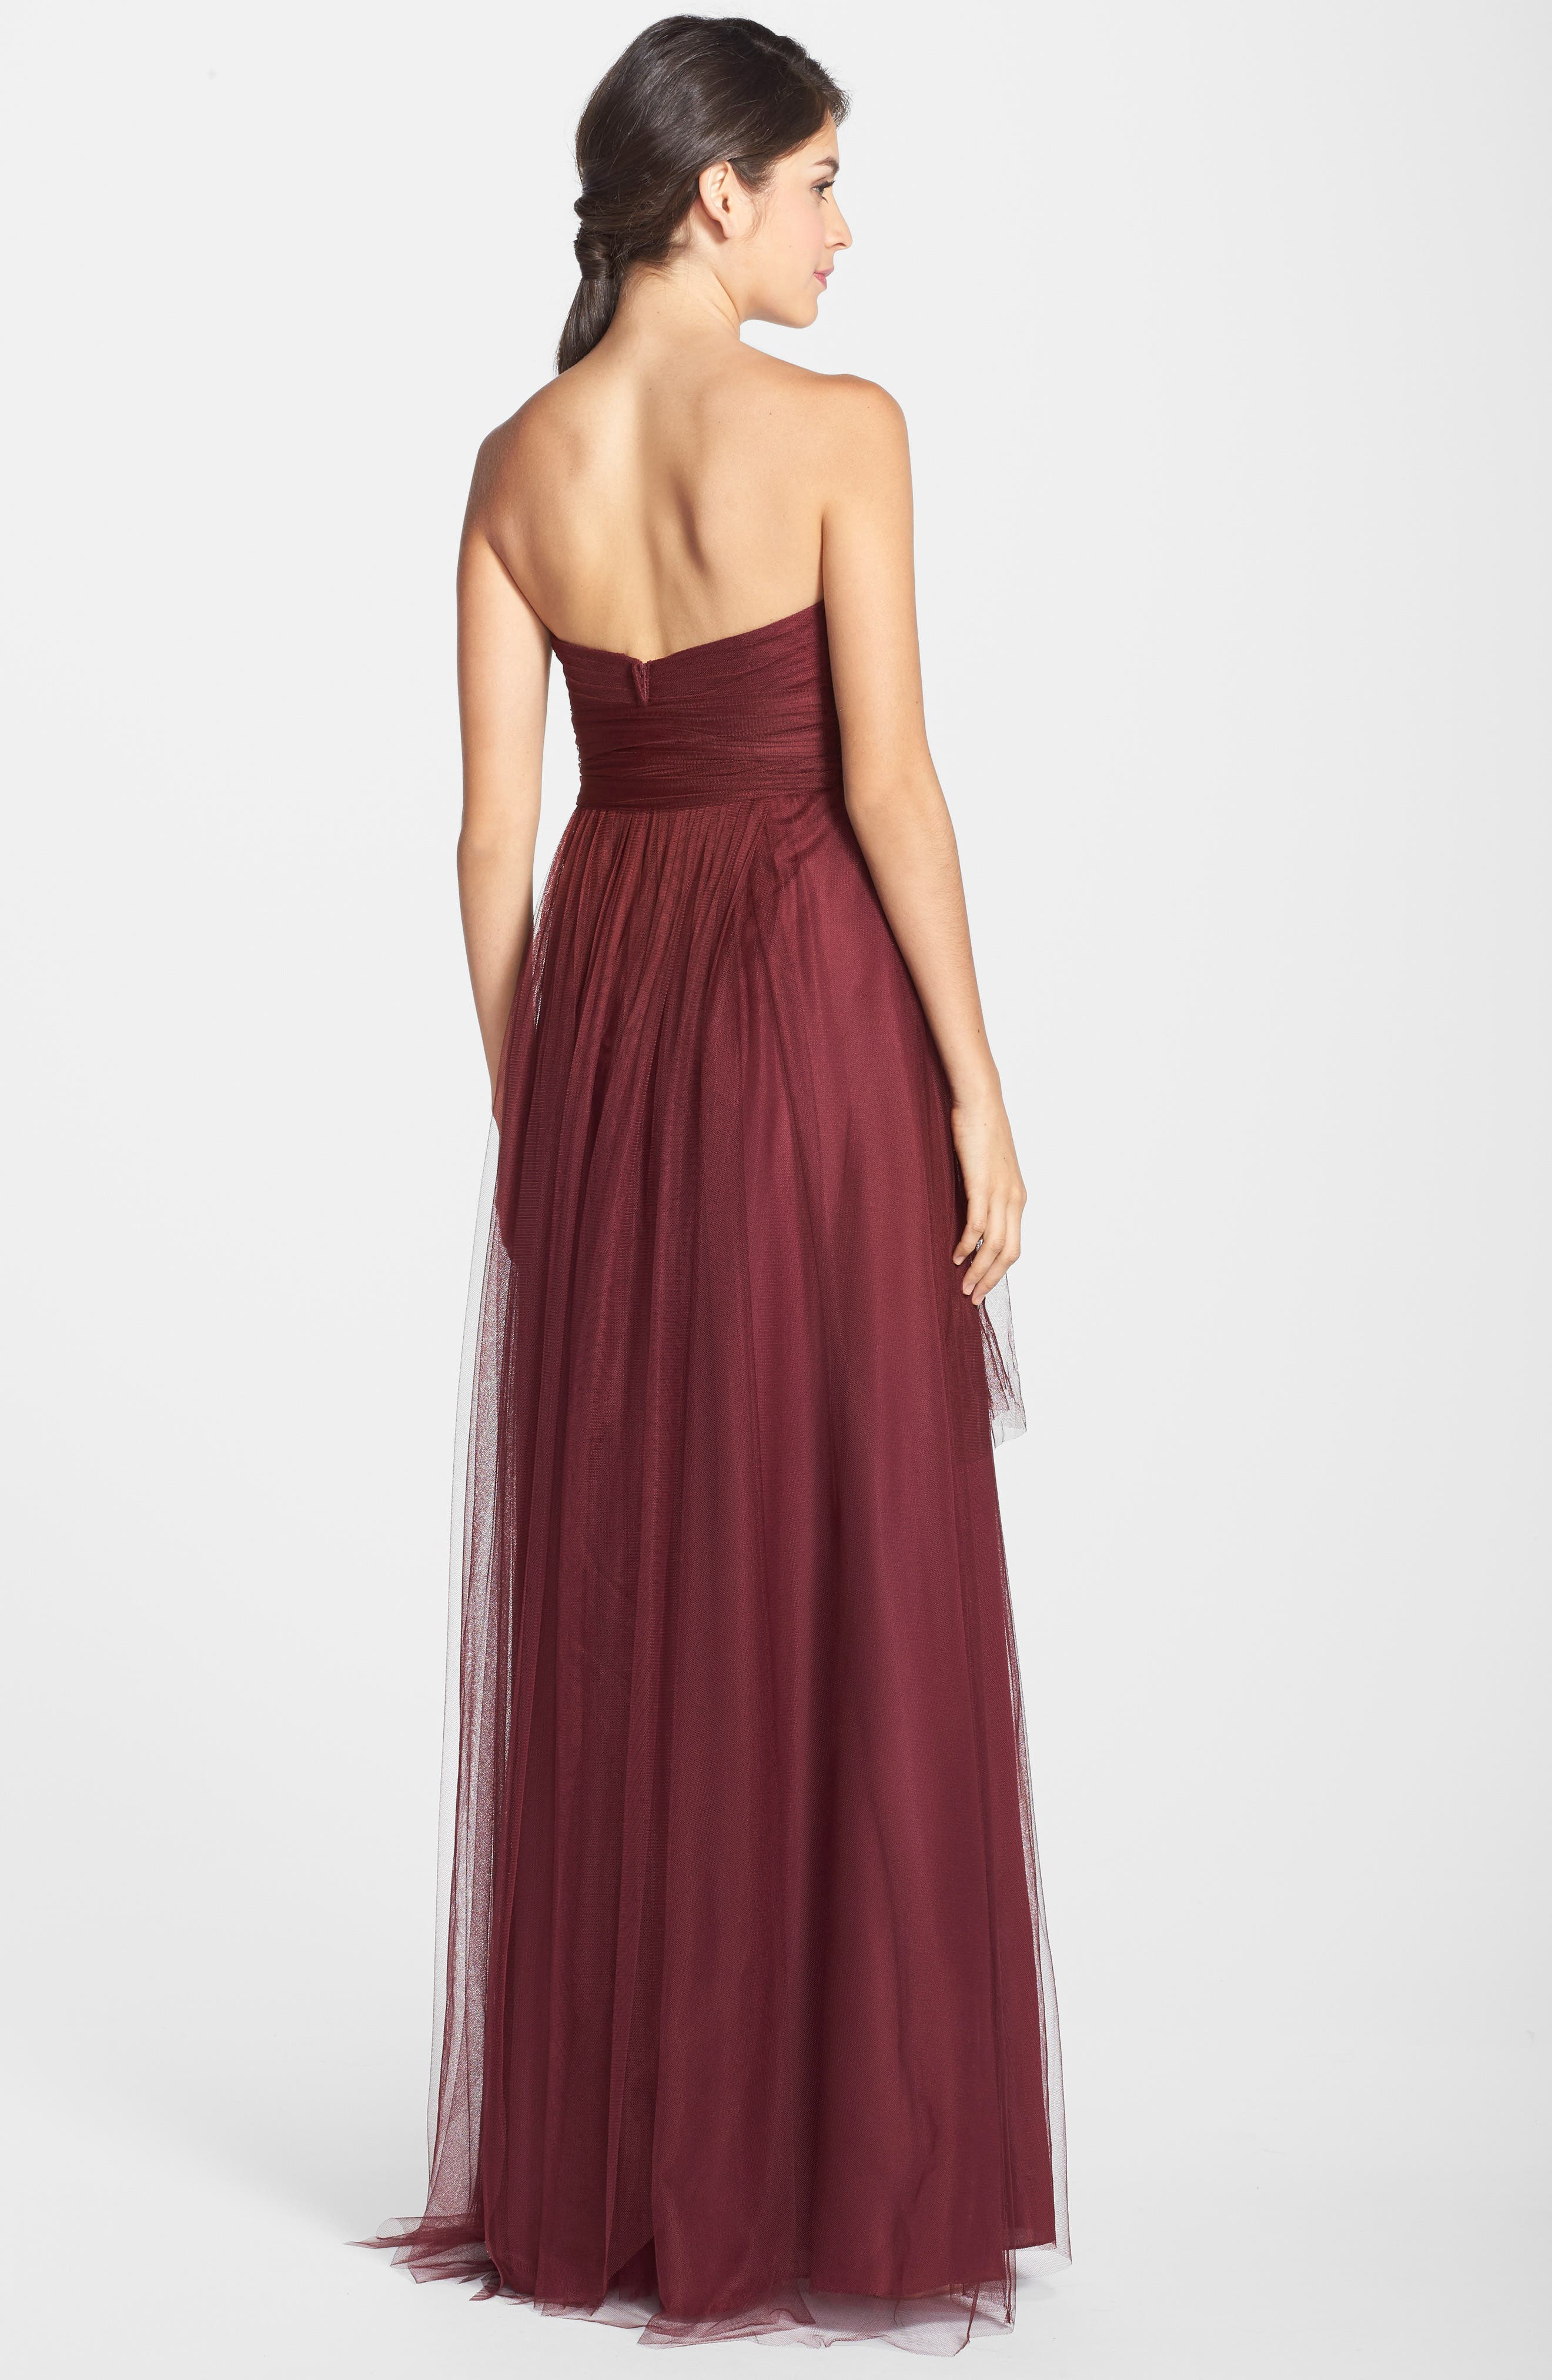 Annabelle Convertible Tulle Column Dress,                             Main thumbnail 12, color,